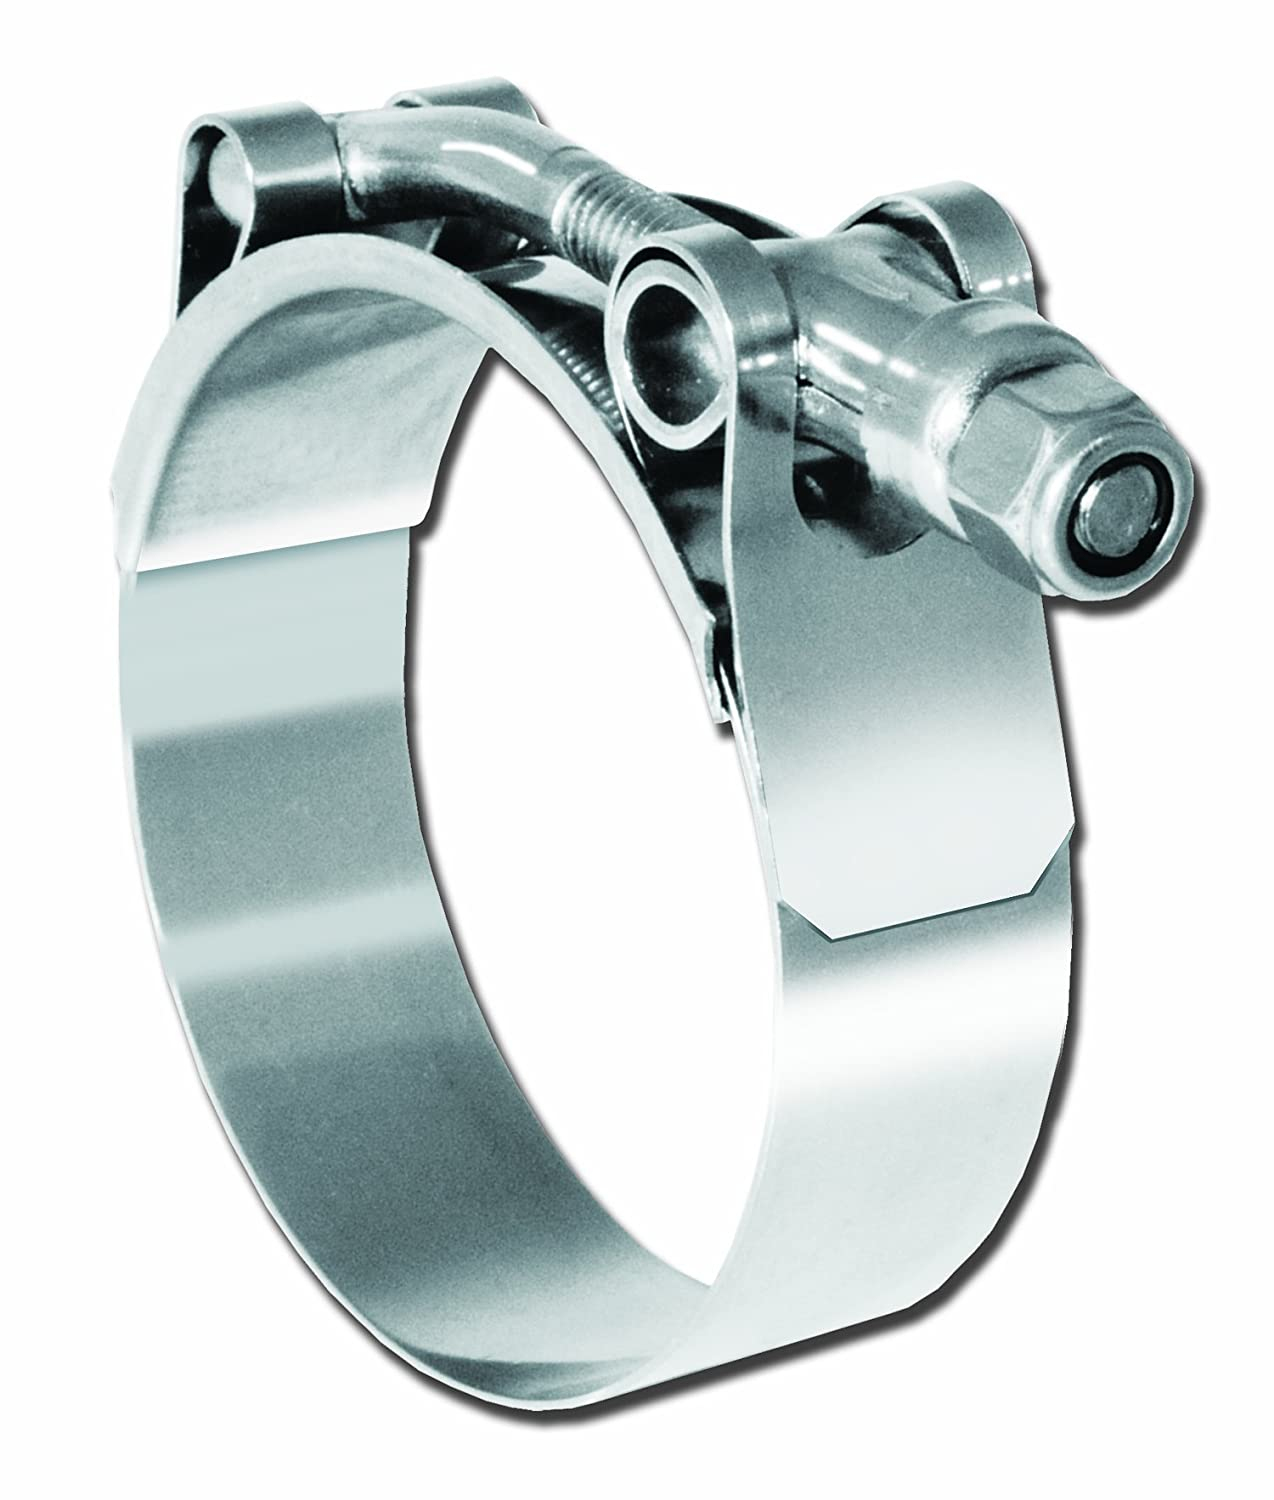 Pro Tie 33736 T-Bolt All Stainless Hose Clamp 4-9//16-Inch SAE Size 108 Range 4-1//4-Inch